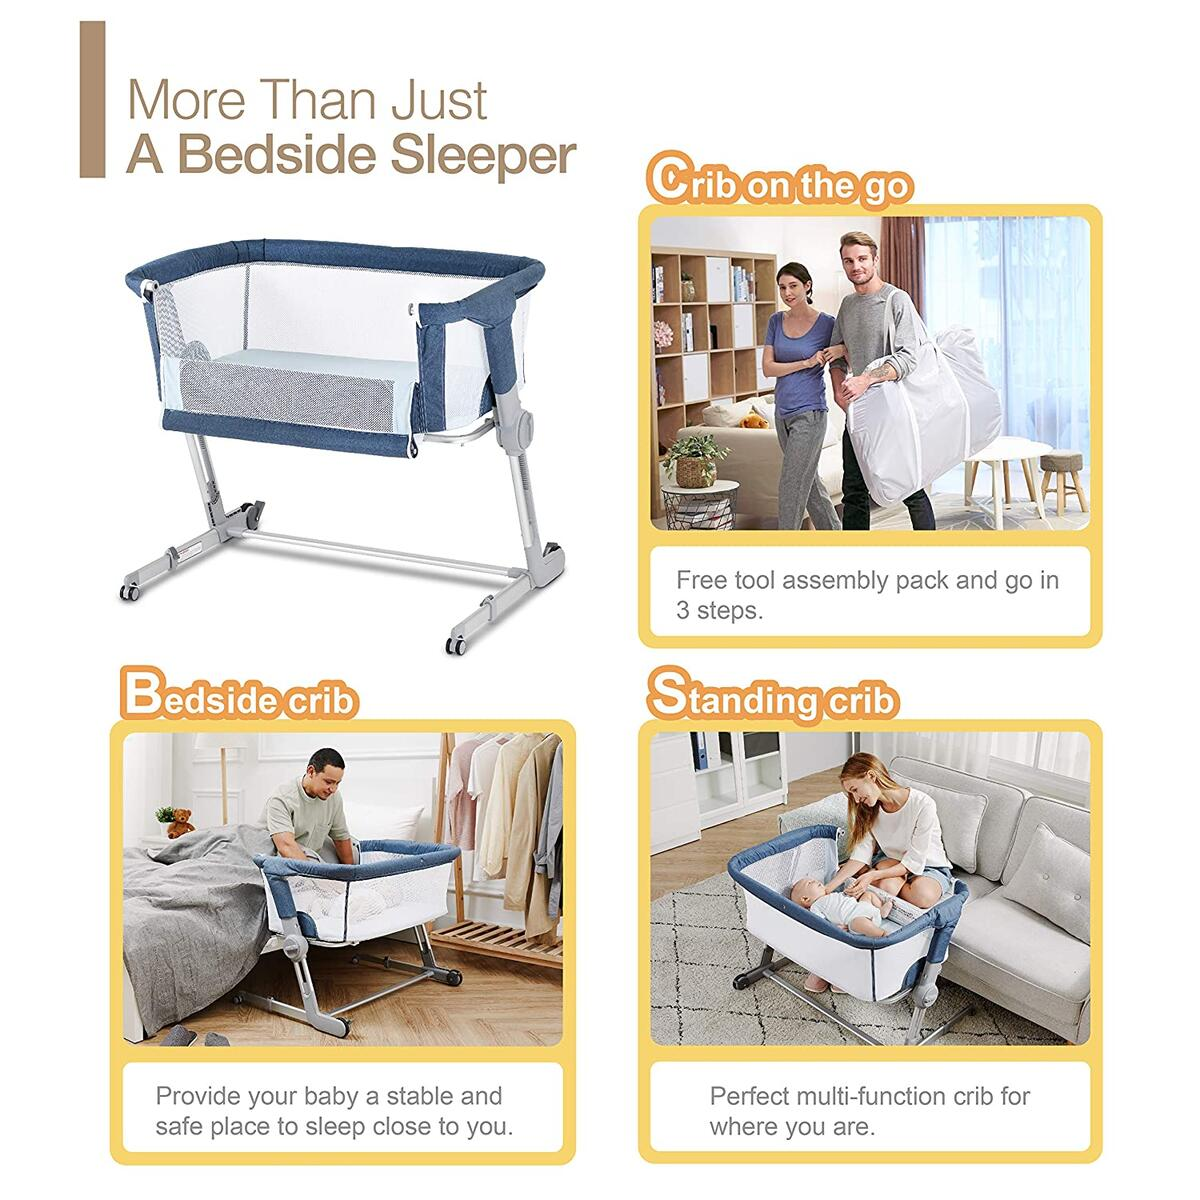 Unilove Hug Me Plus, Bedside Sleeper, Baby Bassinet, Portable Crib Includes Travel Bag, 1.2